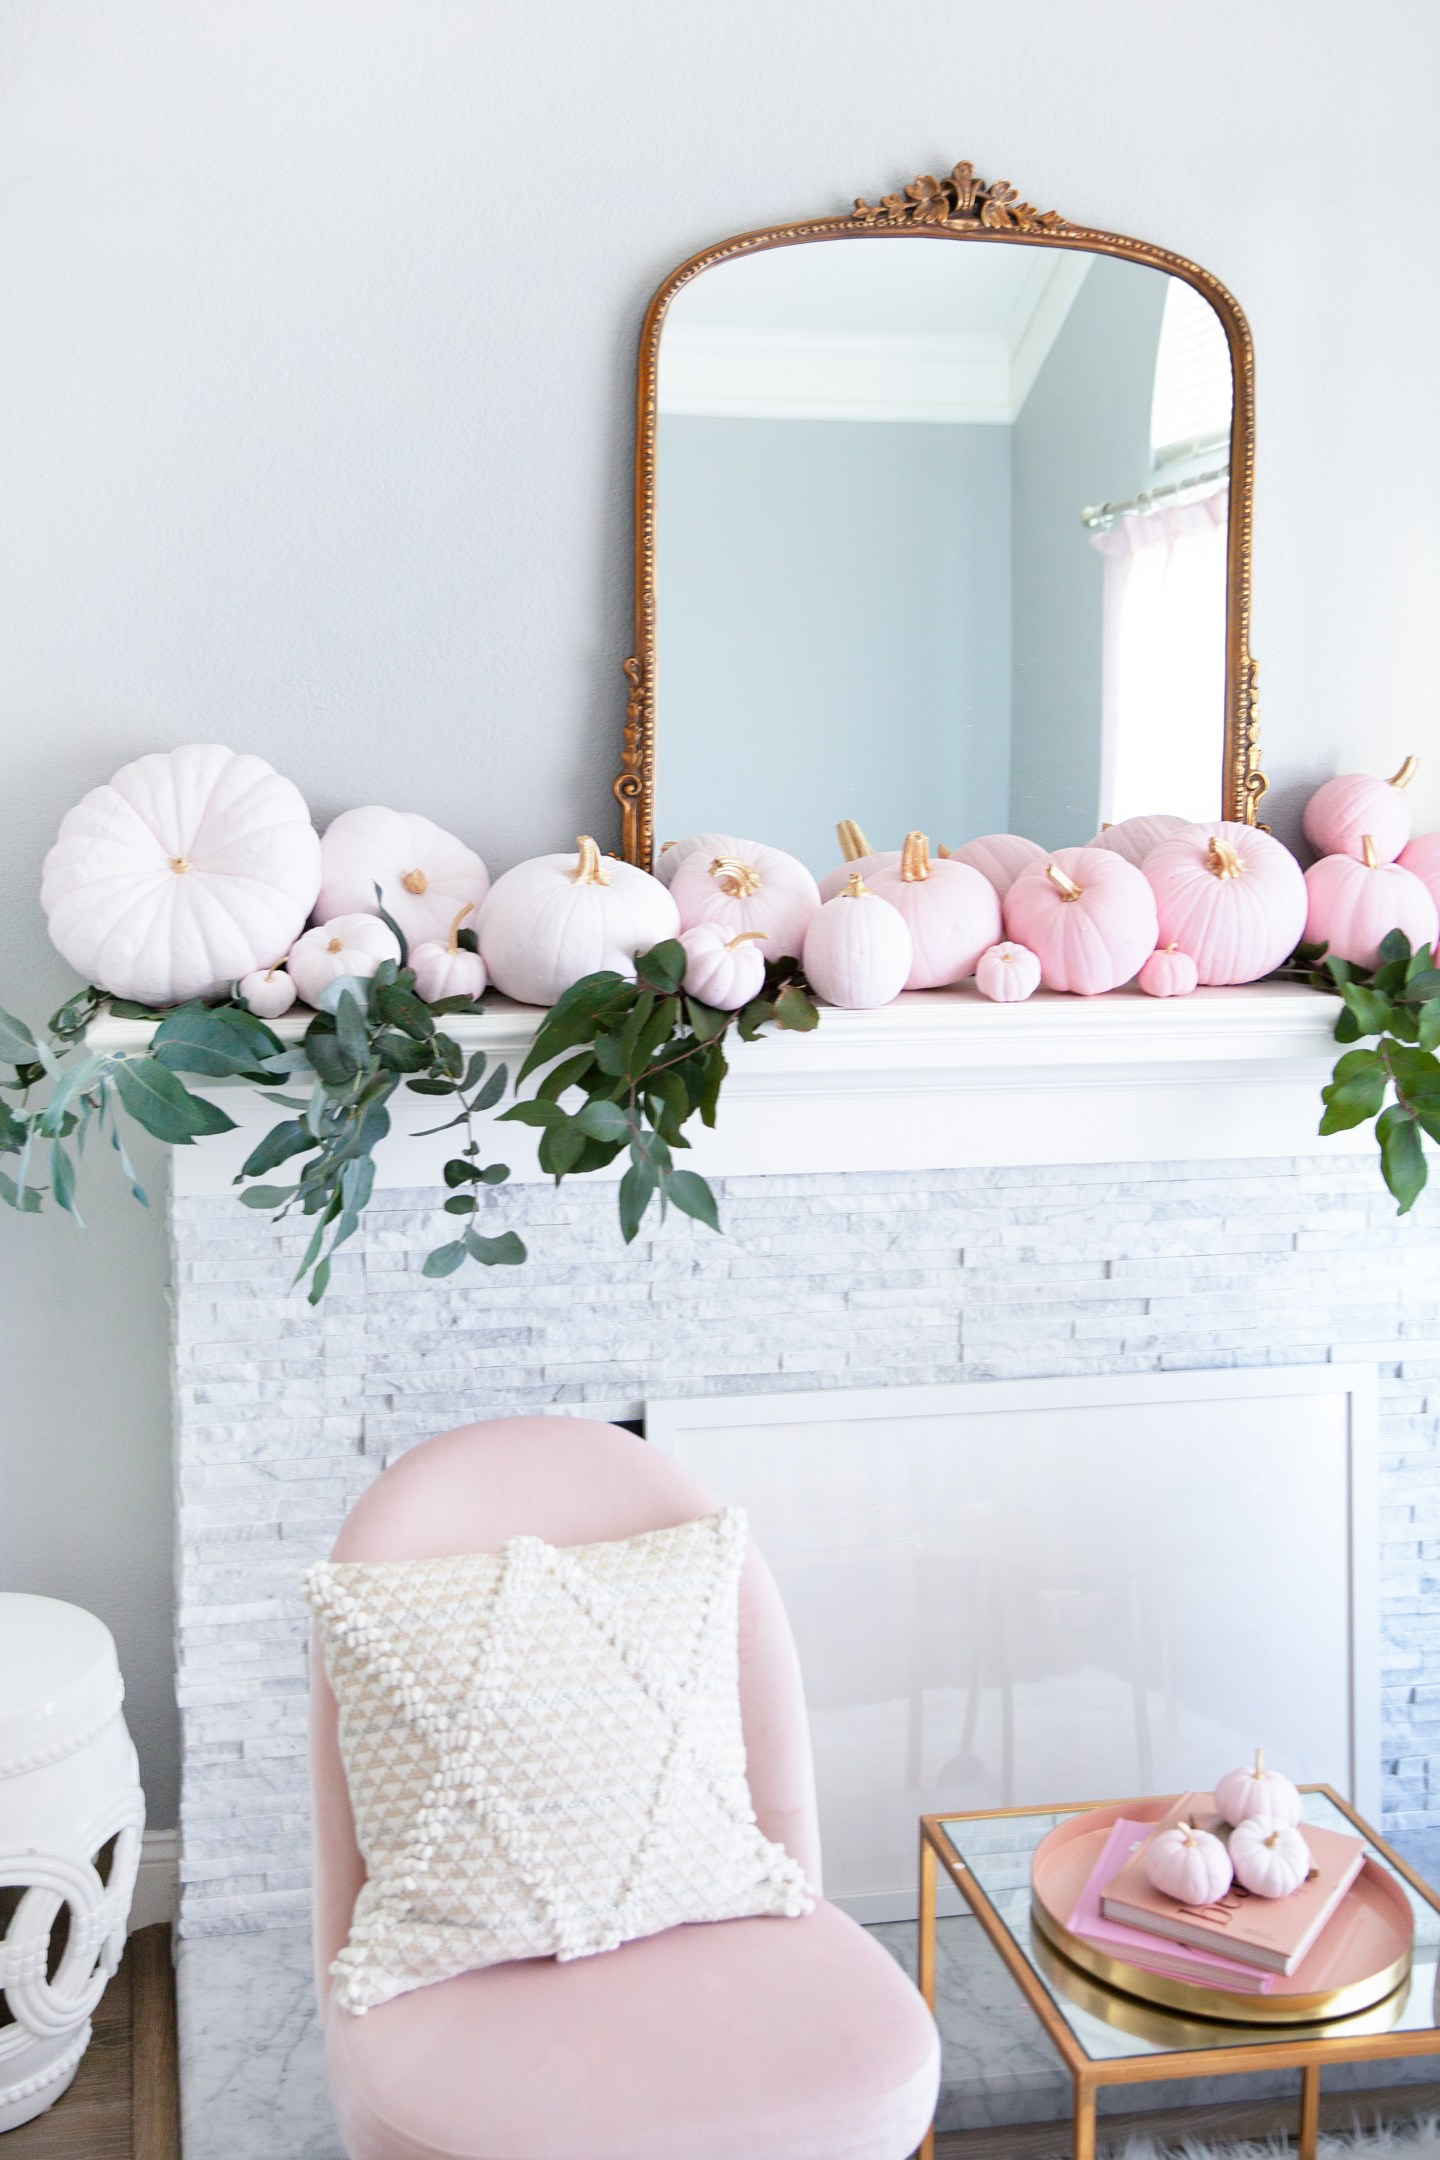 simple ombre pumpkin decor diy | 5 Step Super Easy Ombre Pink Pumpkin Decor Tutorial featured by top San Francisco lifestyle blog, Lombard & Fifth